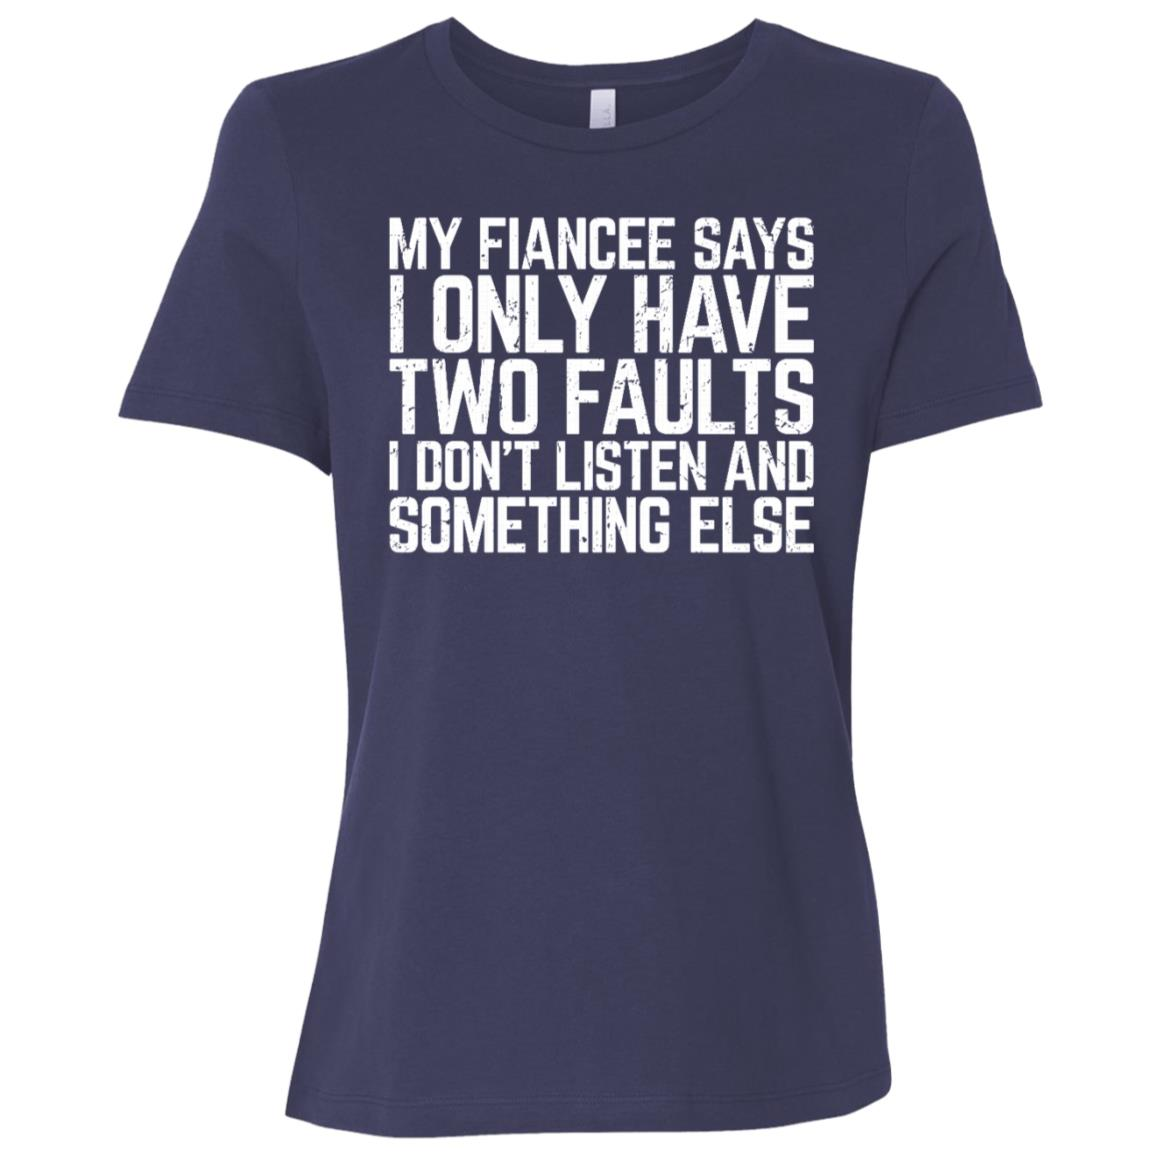 My Fiancee Says I Only Have Two Faults Sleeves Women Short Sleeve T-Shirt